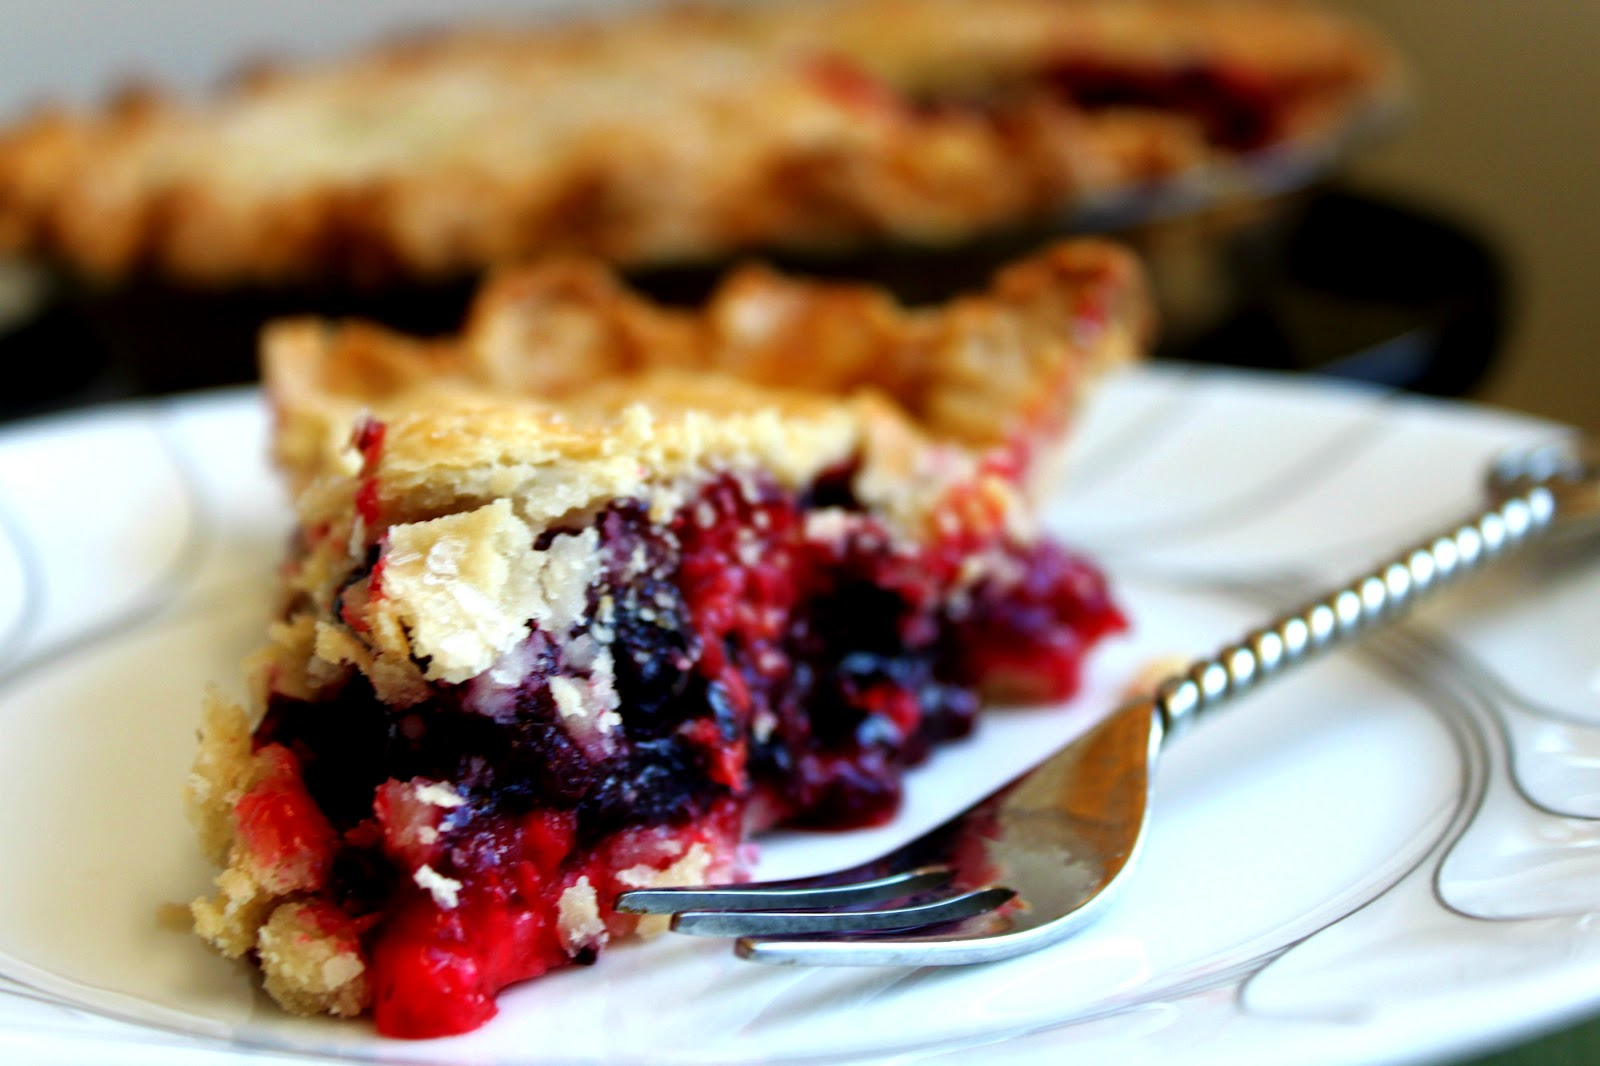 Feast for the Eyes: Berry Pie with a French Pastry Pie Crust